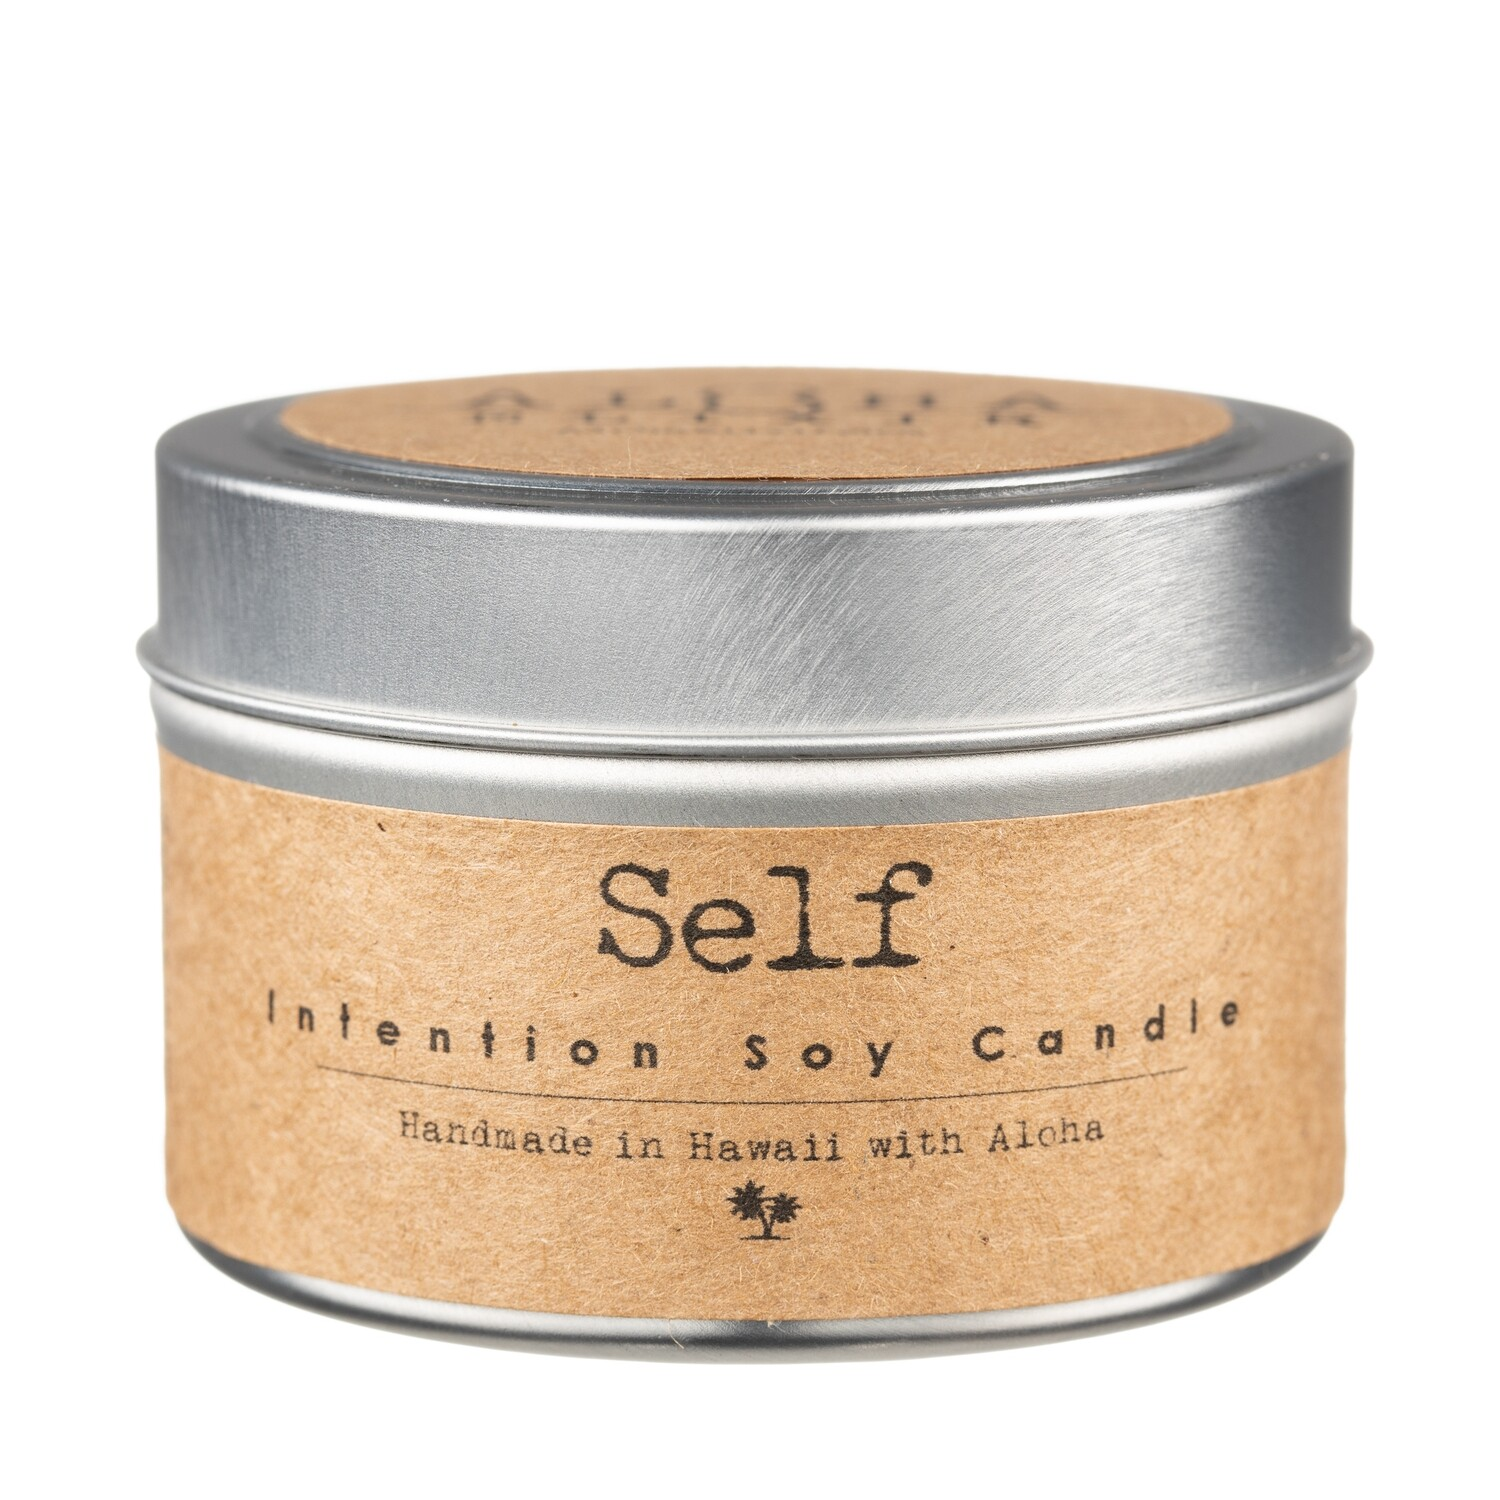 Self Soy Candle